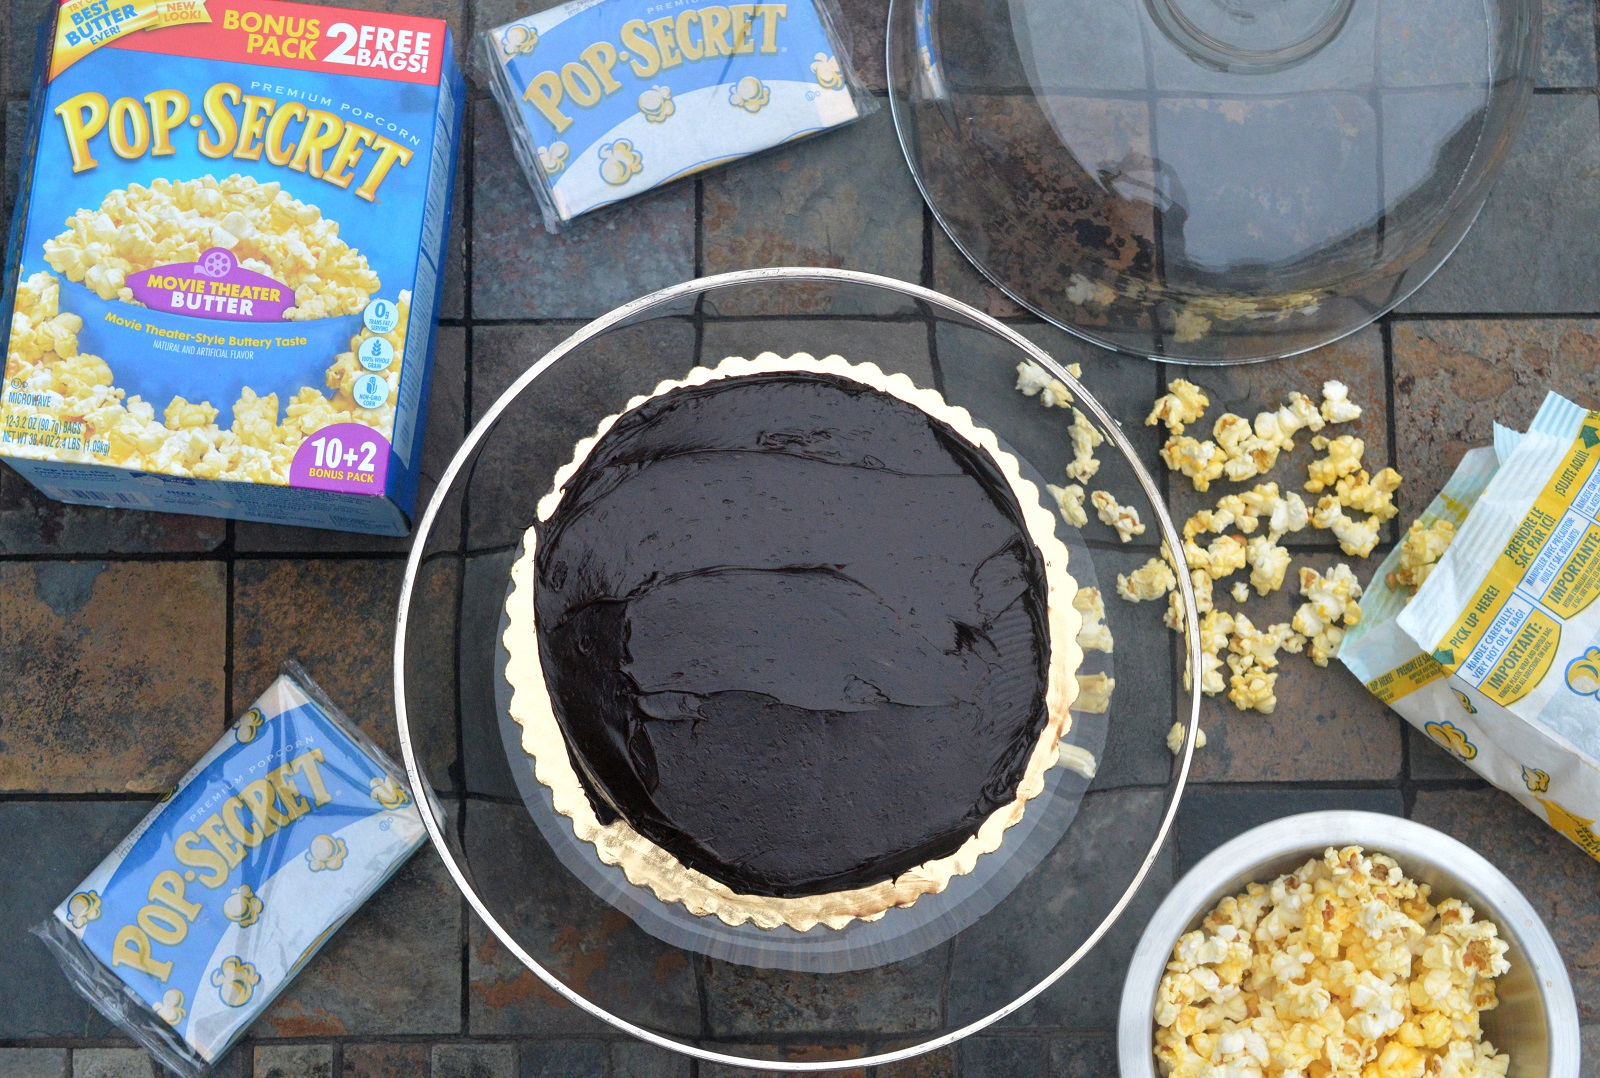 Chocolate Popcorn Cake made with Pop Secret Popcorn